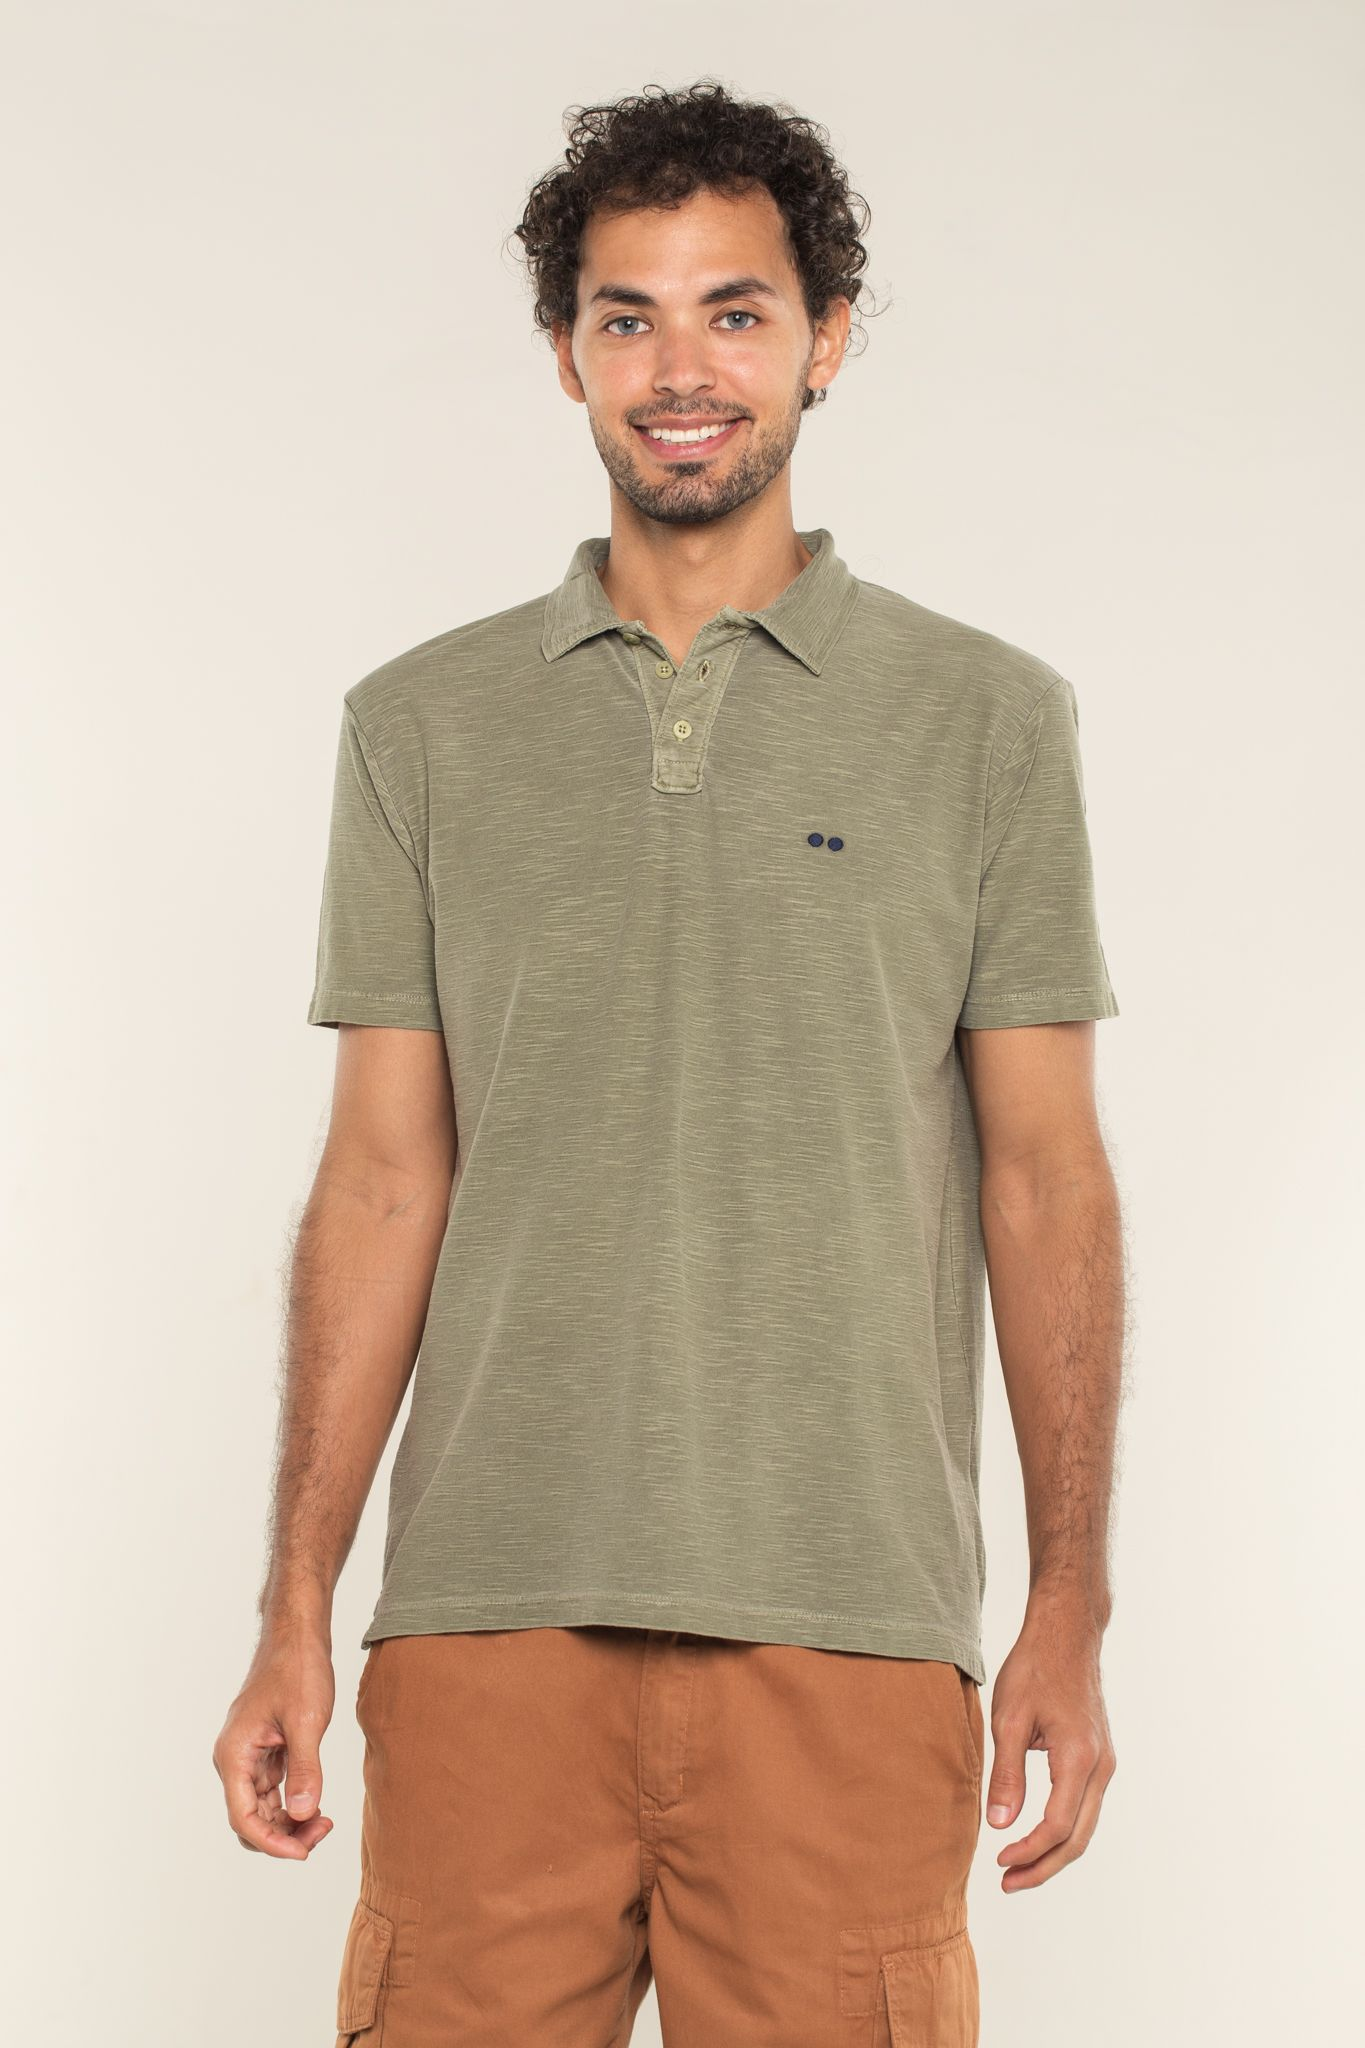 CAMISA POLO JUST VERDE MUSGO